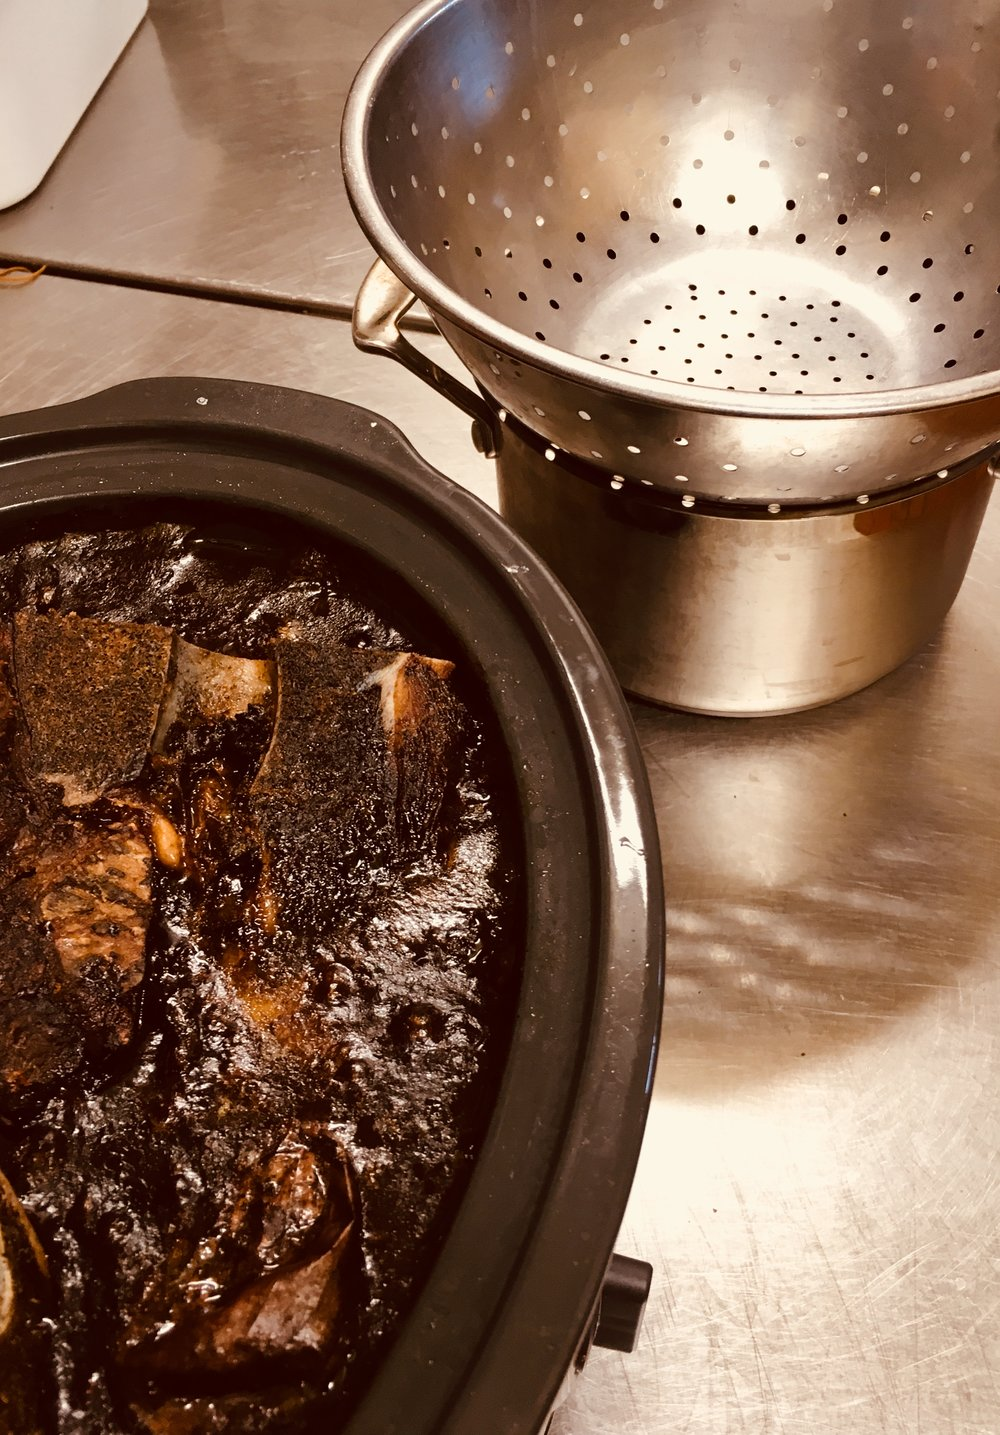 Strainer is ready